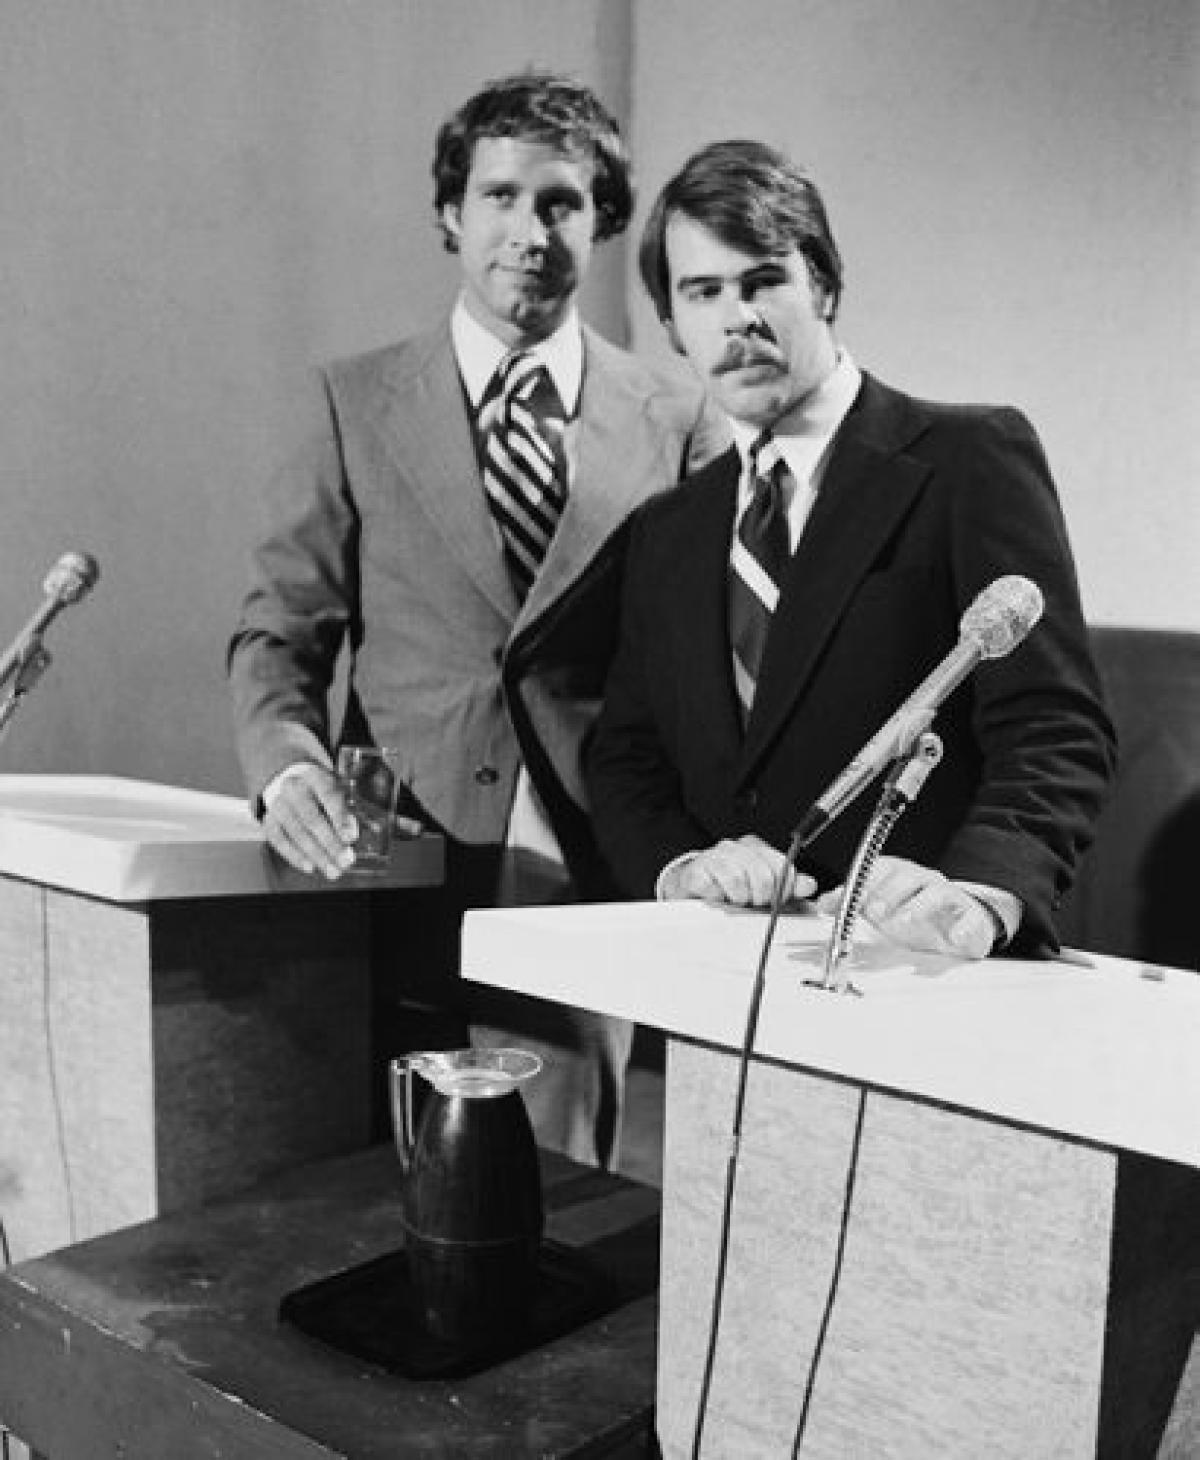 Chevy Chase Gerald Ford Dan Aykroyd Jimmy Carter Snl